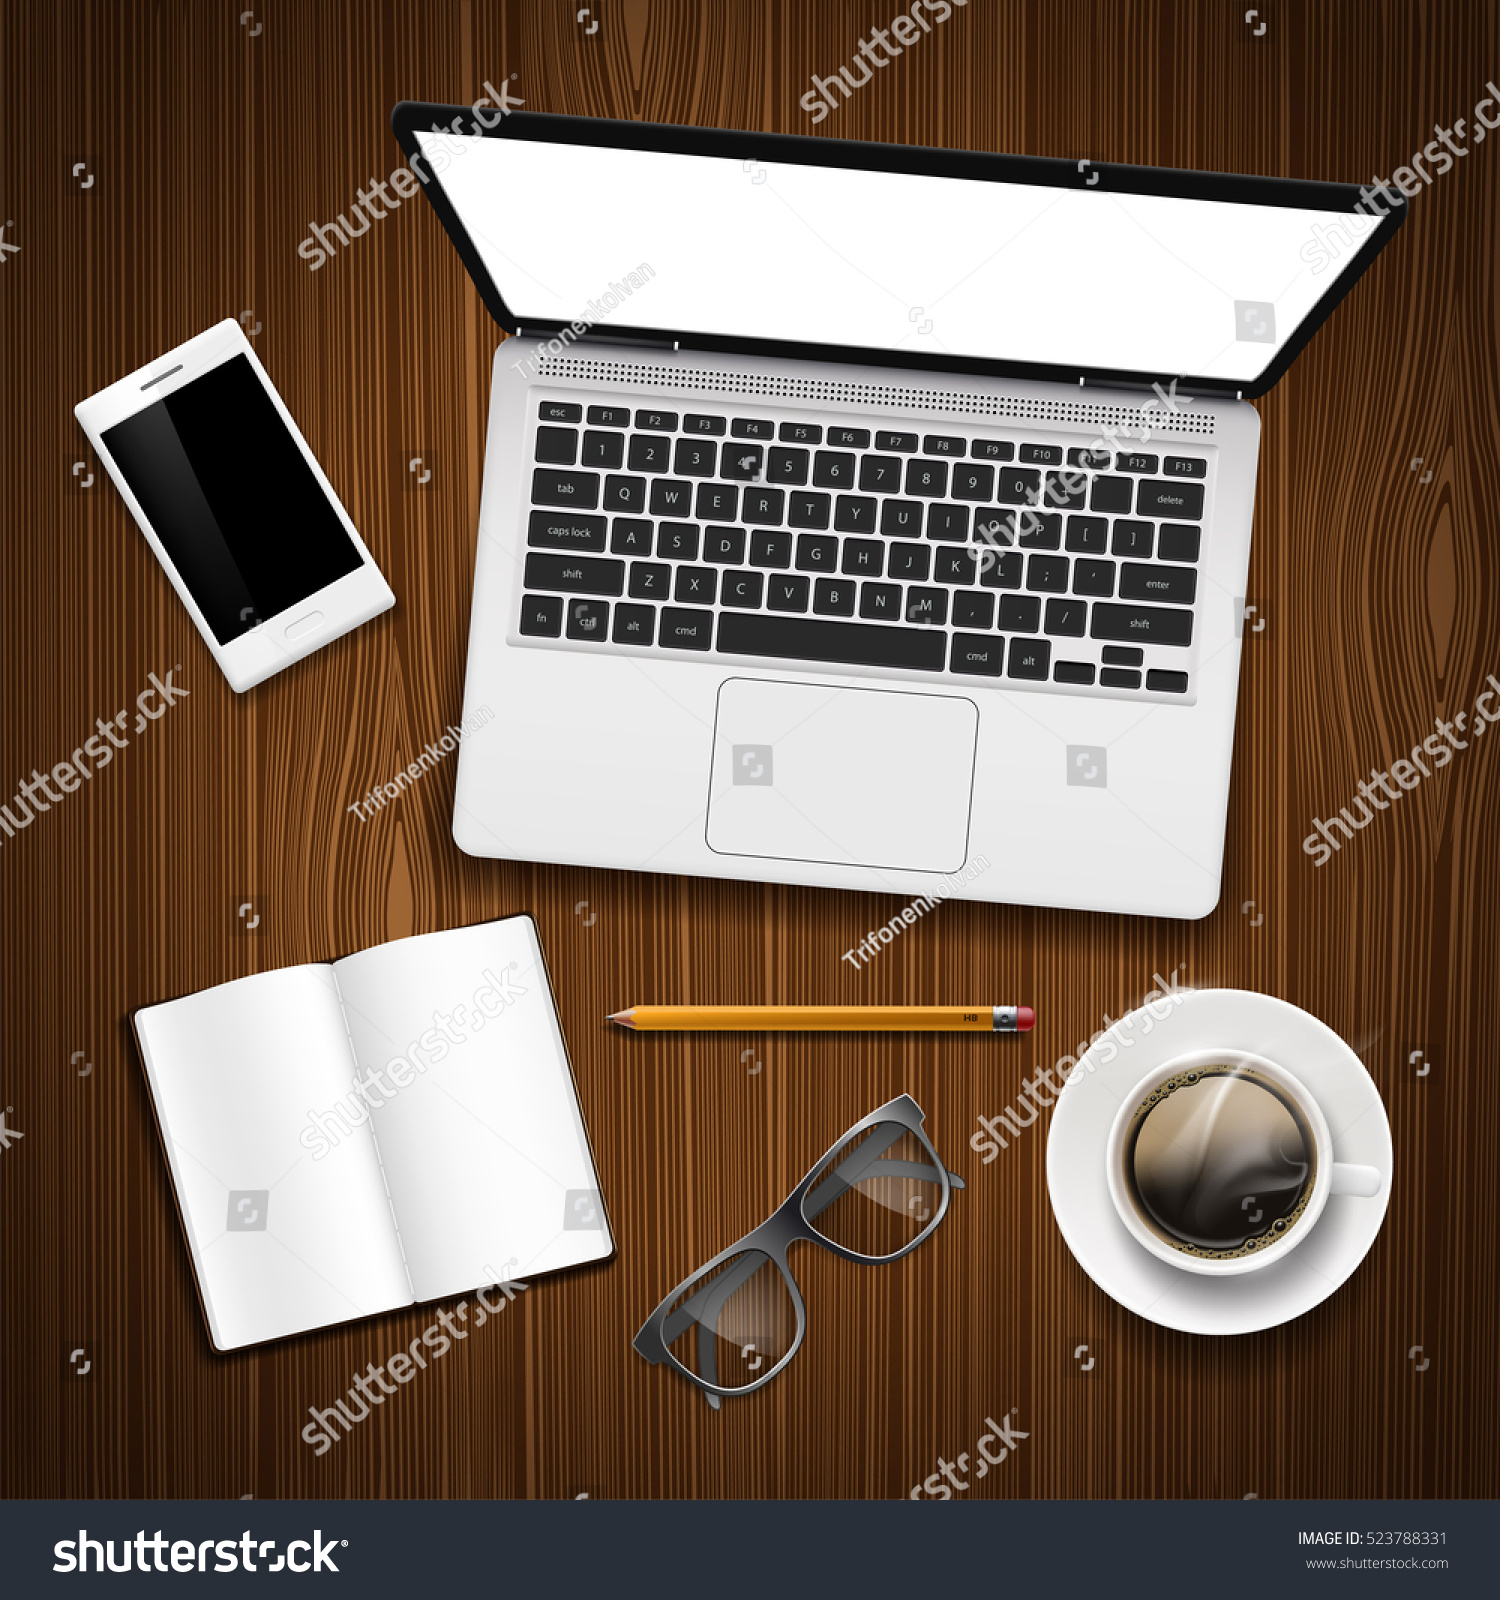 Laptop Blank Screen Smartphone Cup Coffee Stock Vector